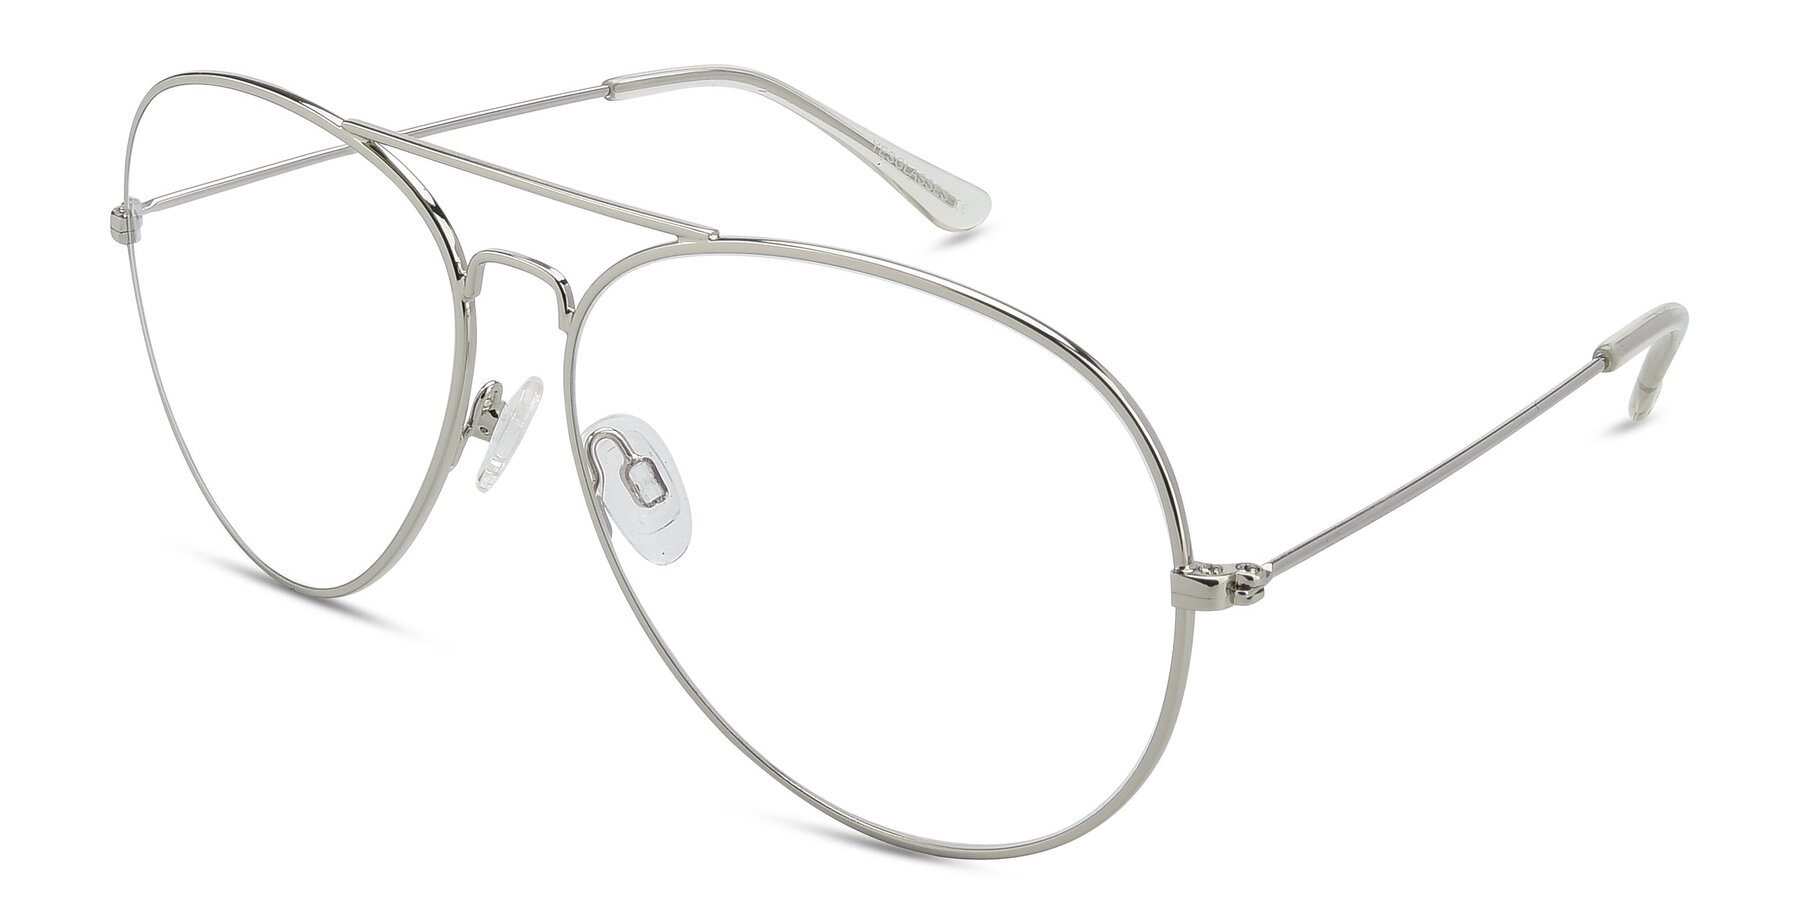 Angle of SSR179 in Silver with Clear Eyeglass Lenses